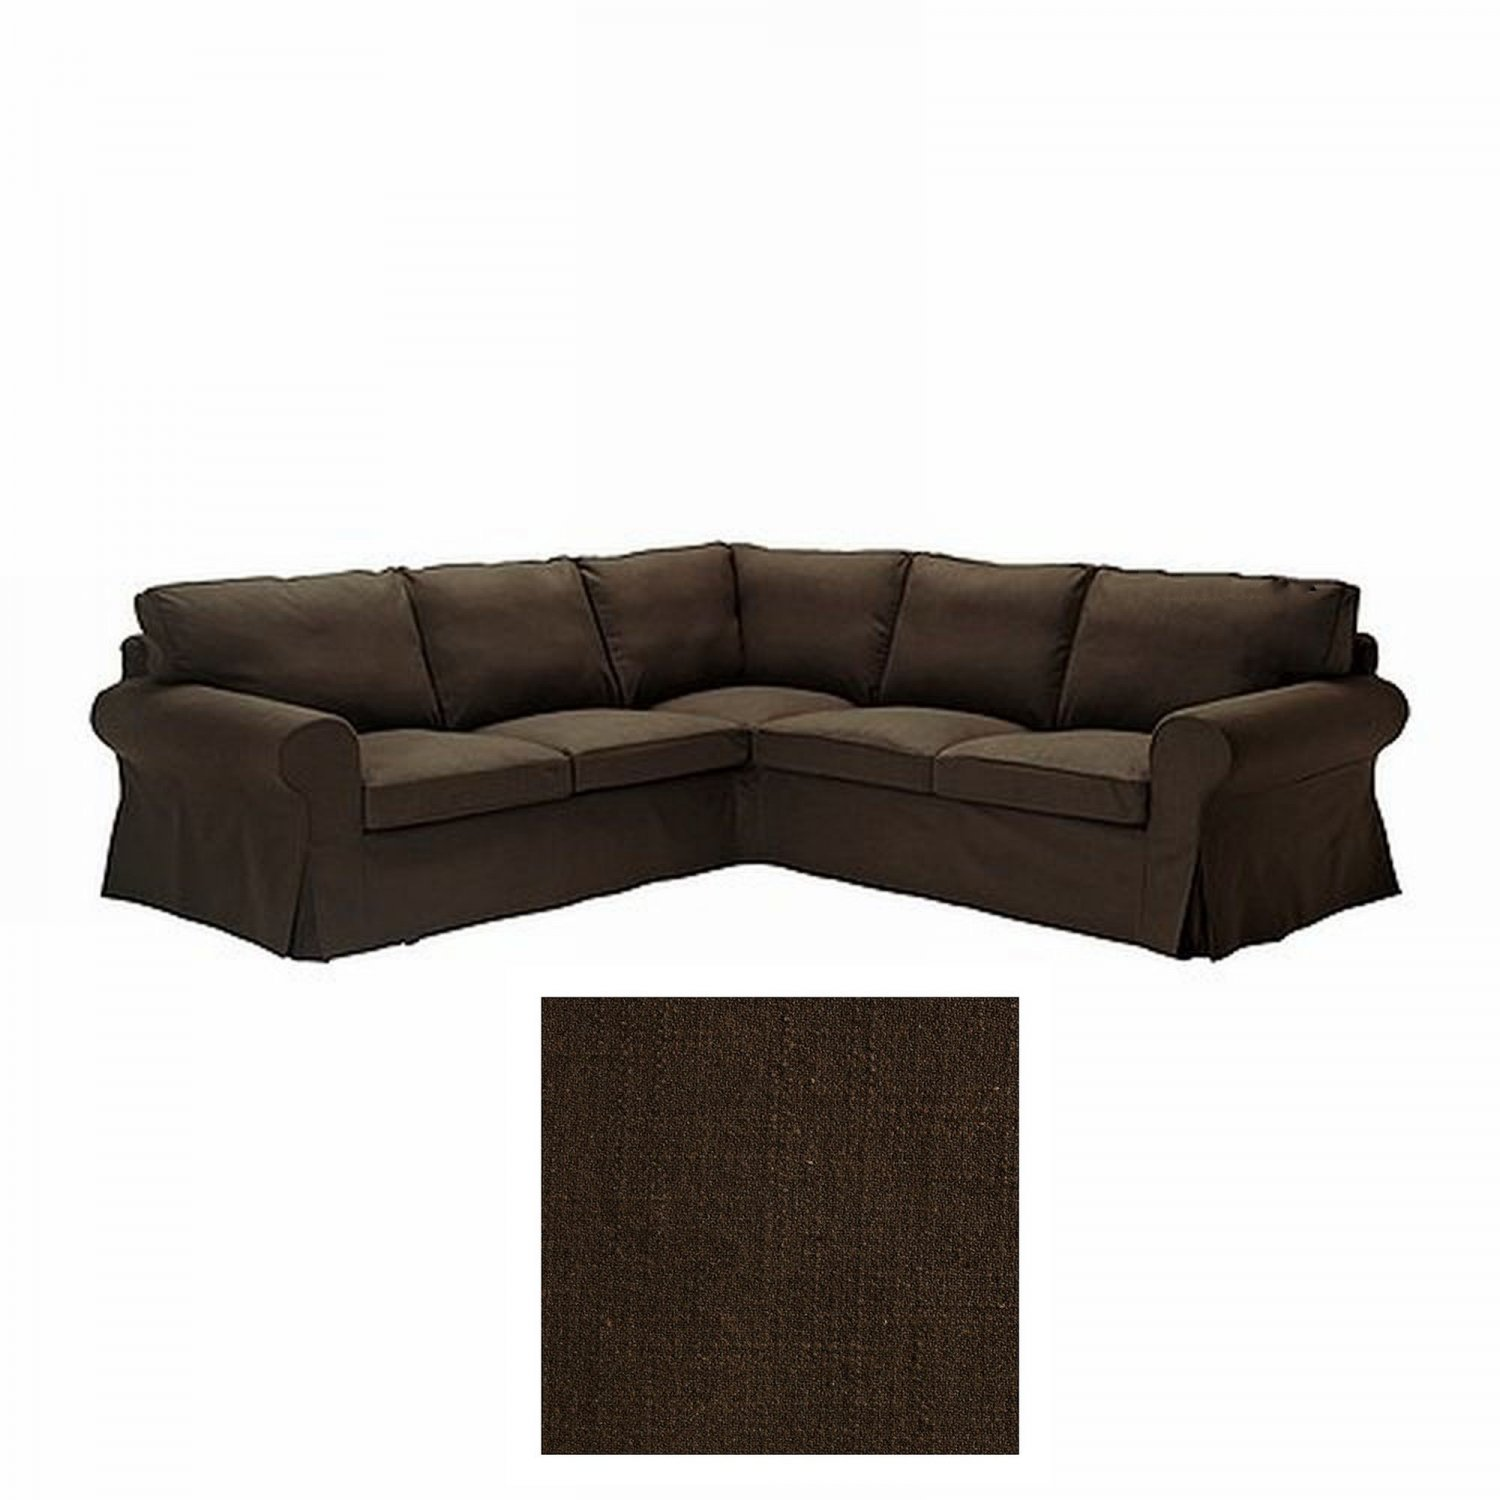 ikea ektorp 2 2 corner sofa cover slipcover svanby brown. Black Bedroom Furniture Sets. Home Design Ideas